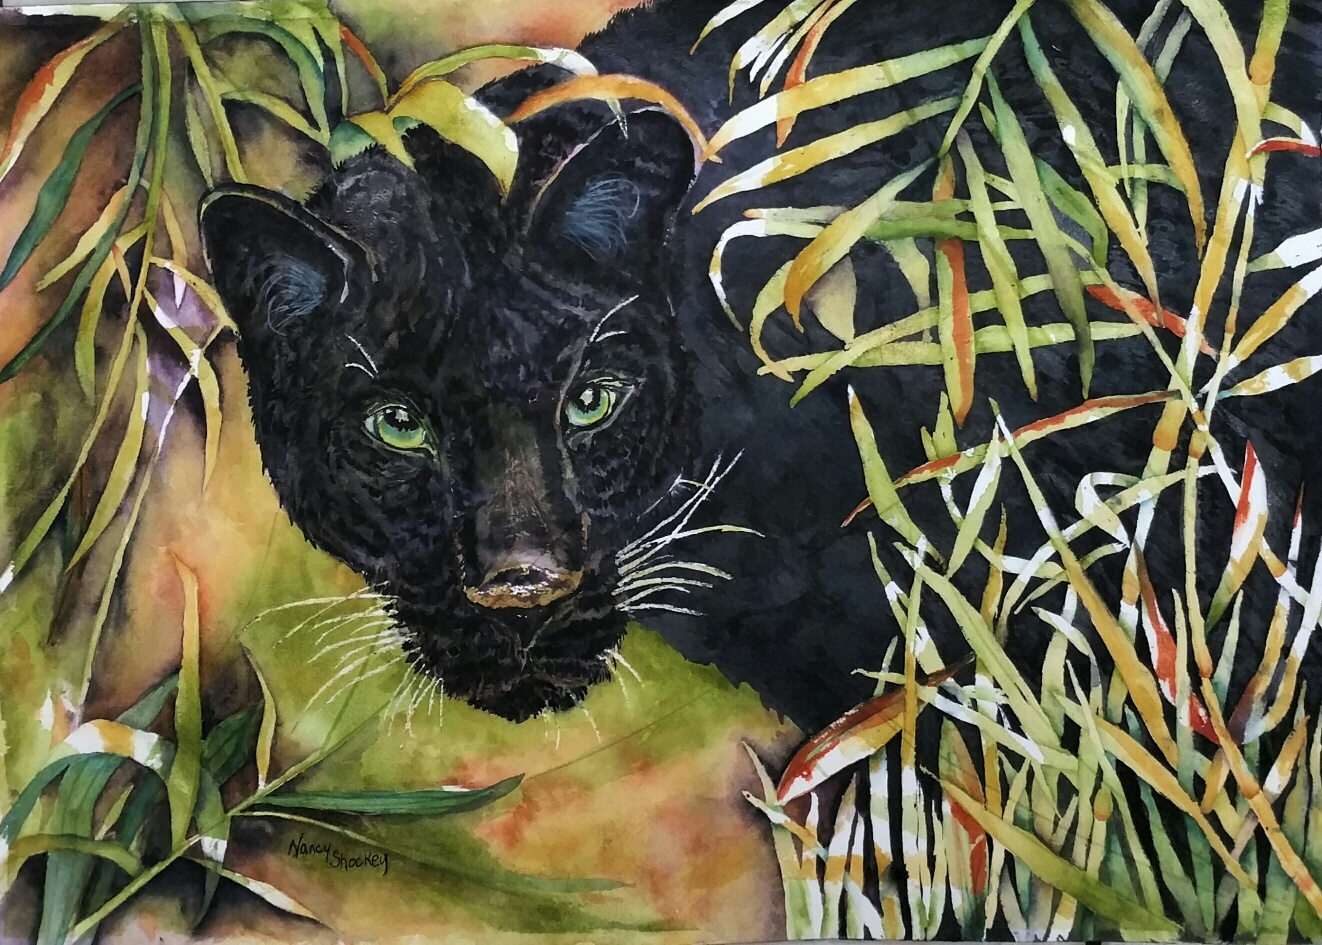 Panther by Nancy S.